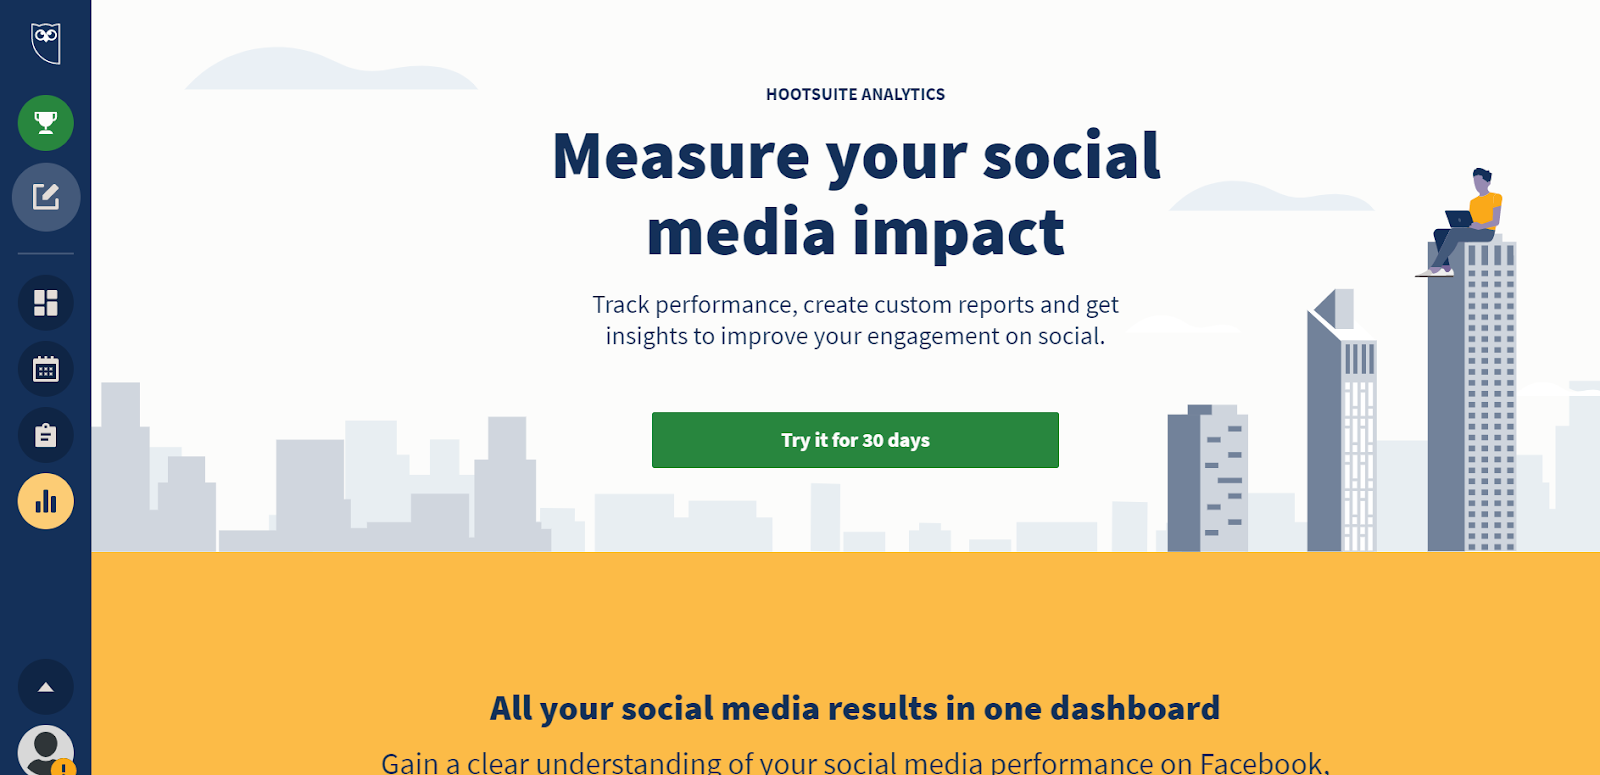 Hootsuite: Top 15 Social Media Tools Nigeria Businesses Can Use To Manage Their Accounts